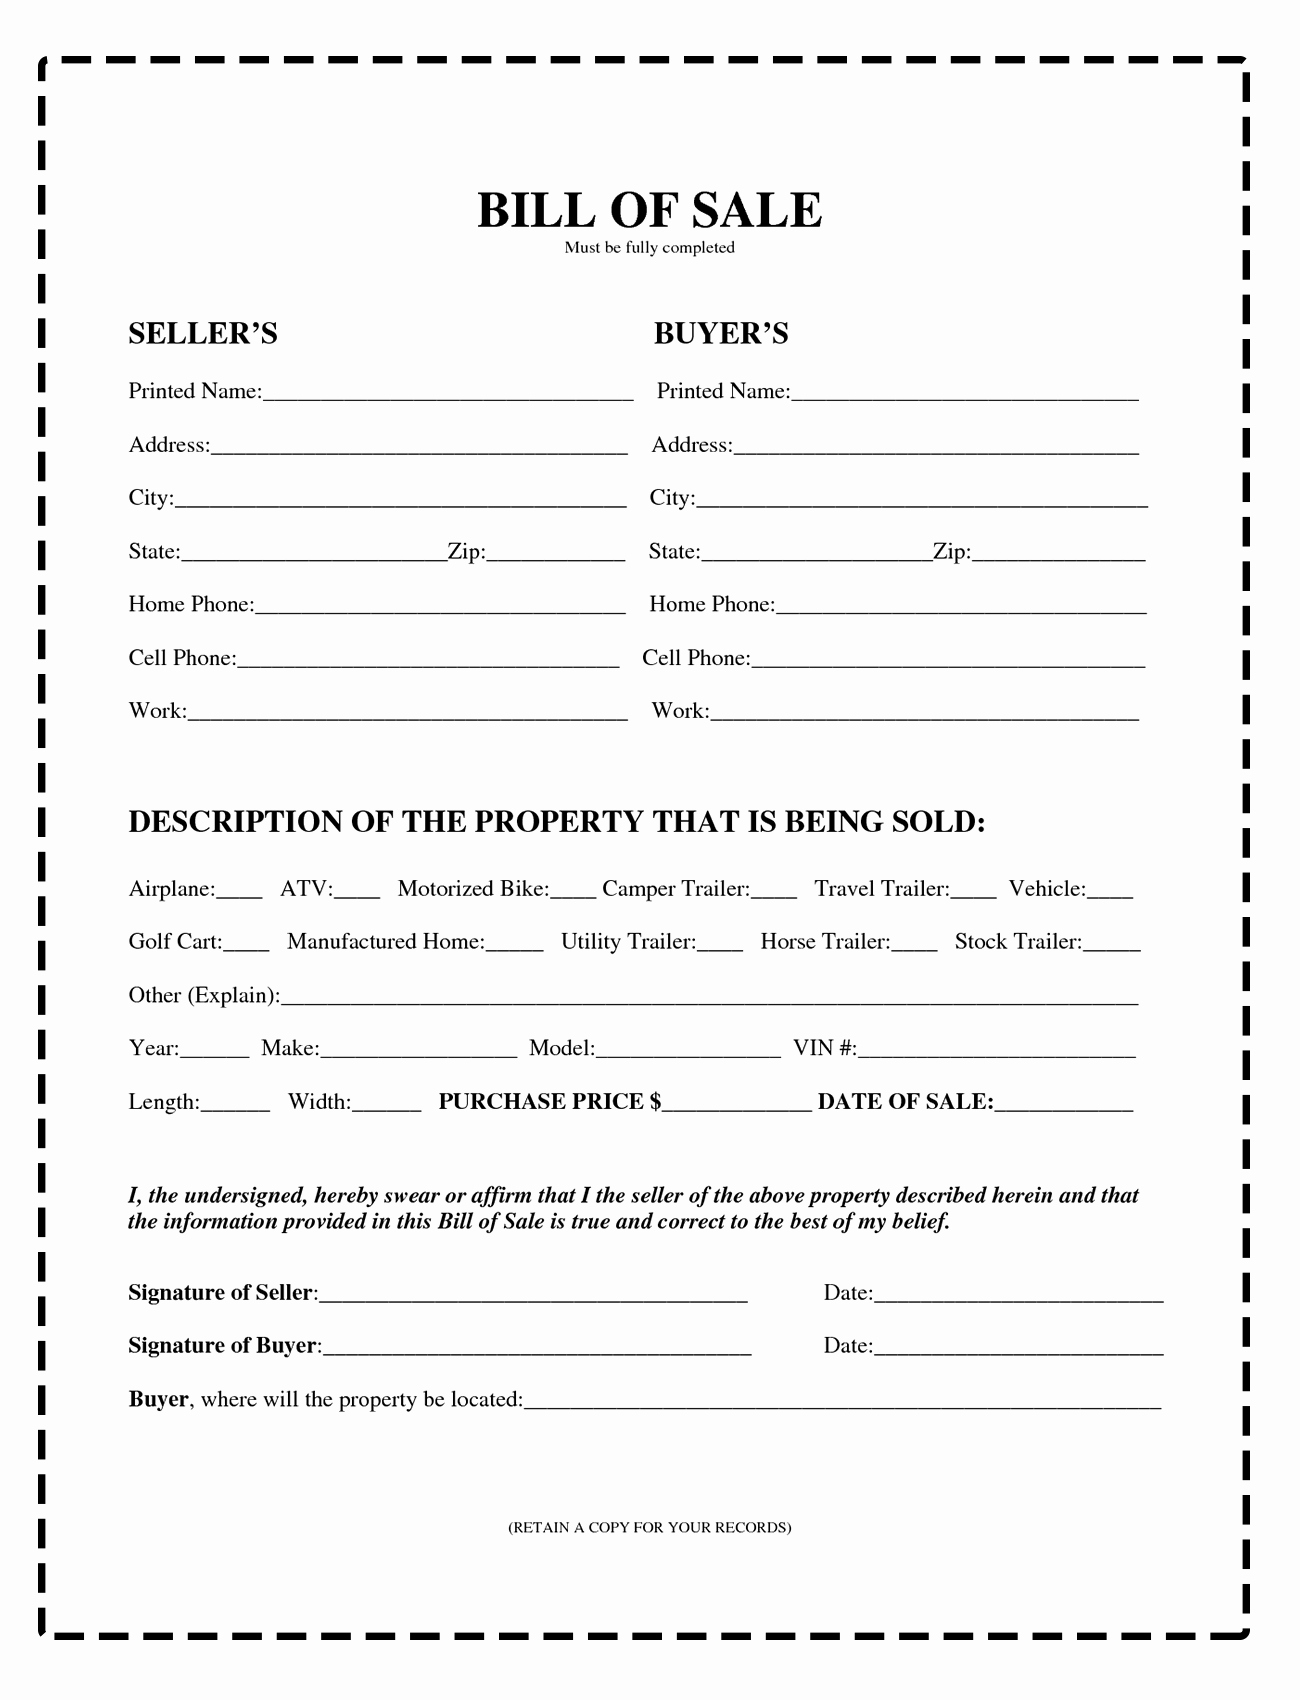 Bill Of Sale form Pdf Luxury Download Bill Sale forms – Pdf & Image